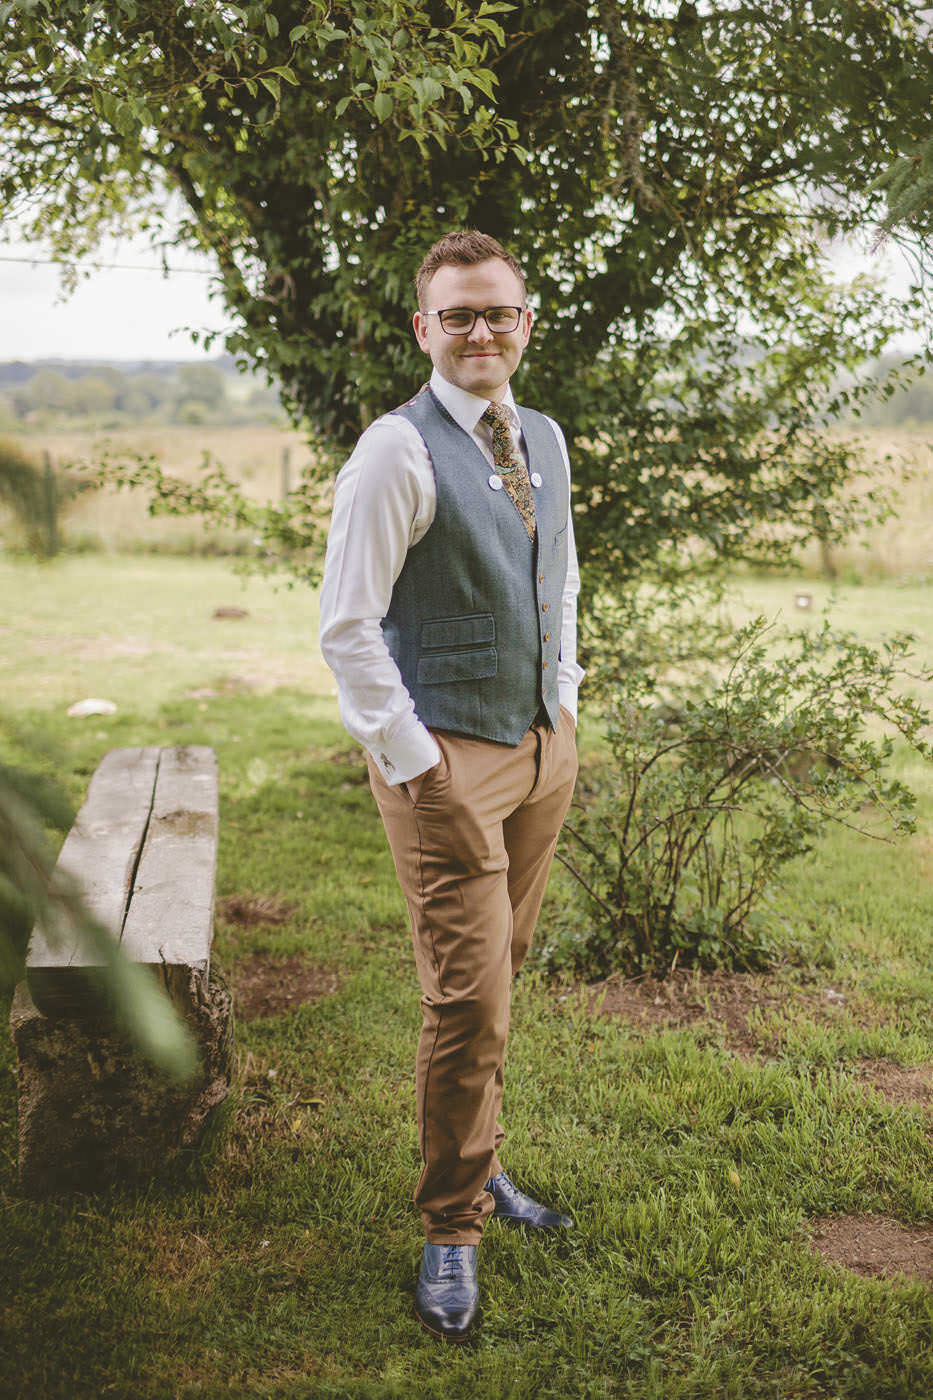 anthonytyler saint hillaire la treille france wedding photographer 0037